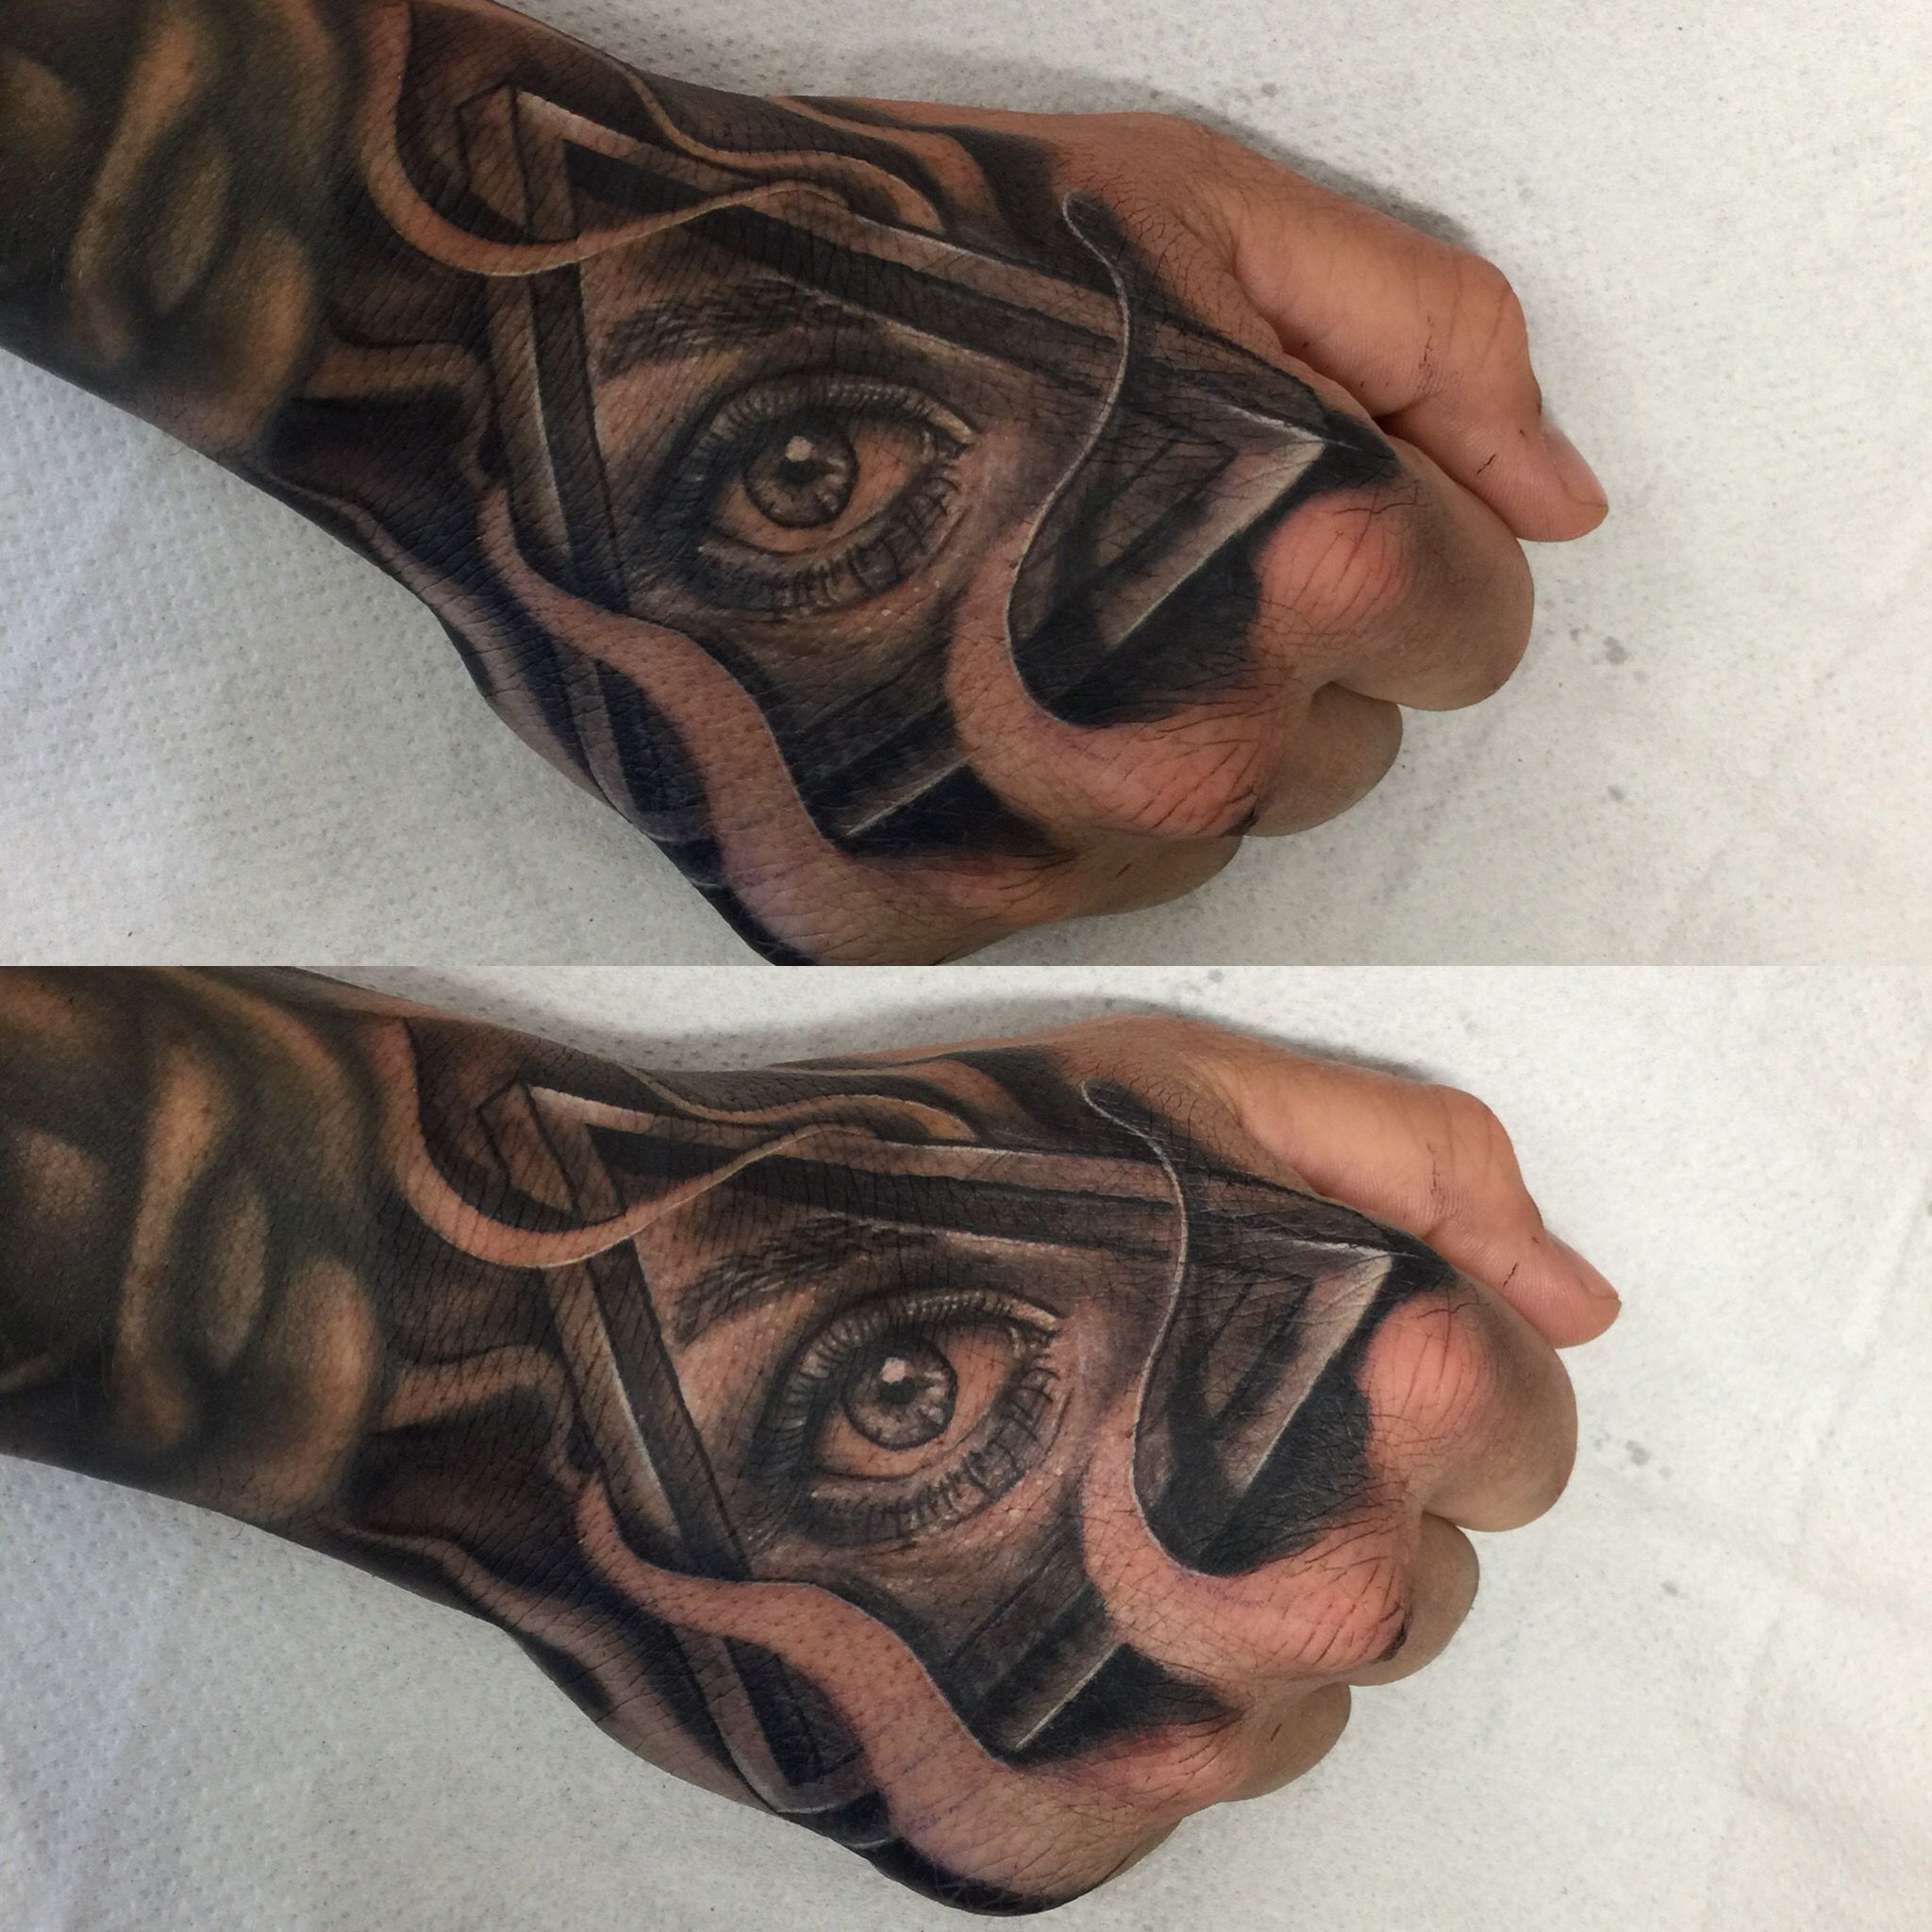 Hand Tattoo Optical Illusion Triangle And Eye Combo Hope You Like It Hand Tattoos For Guys Eye Tattoo Tattoos For Guys